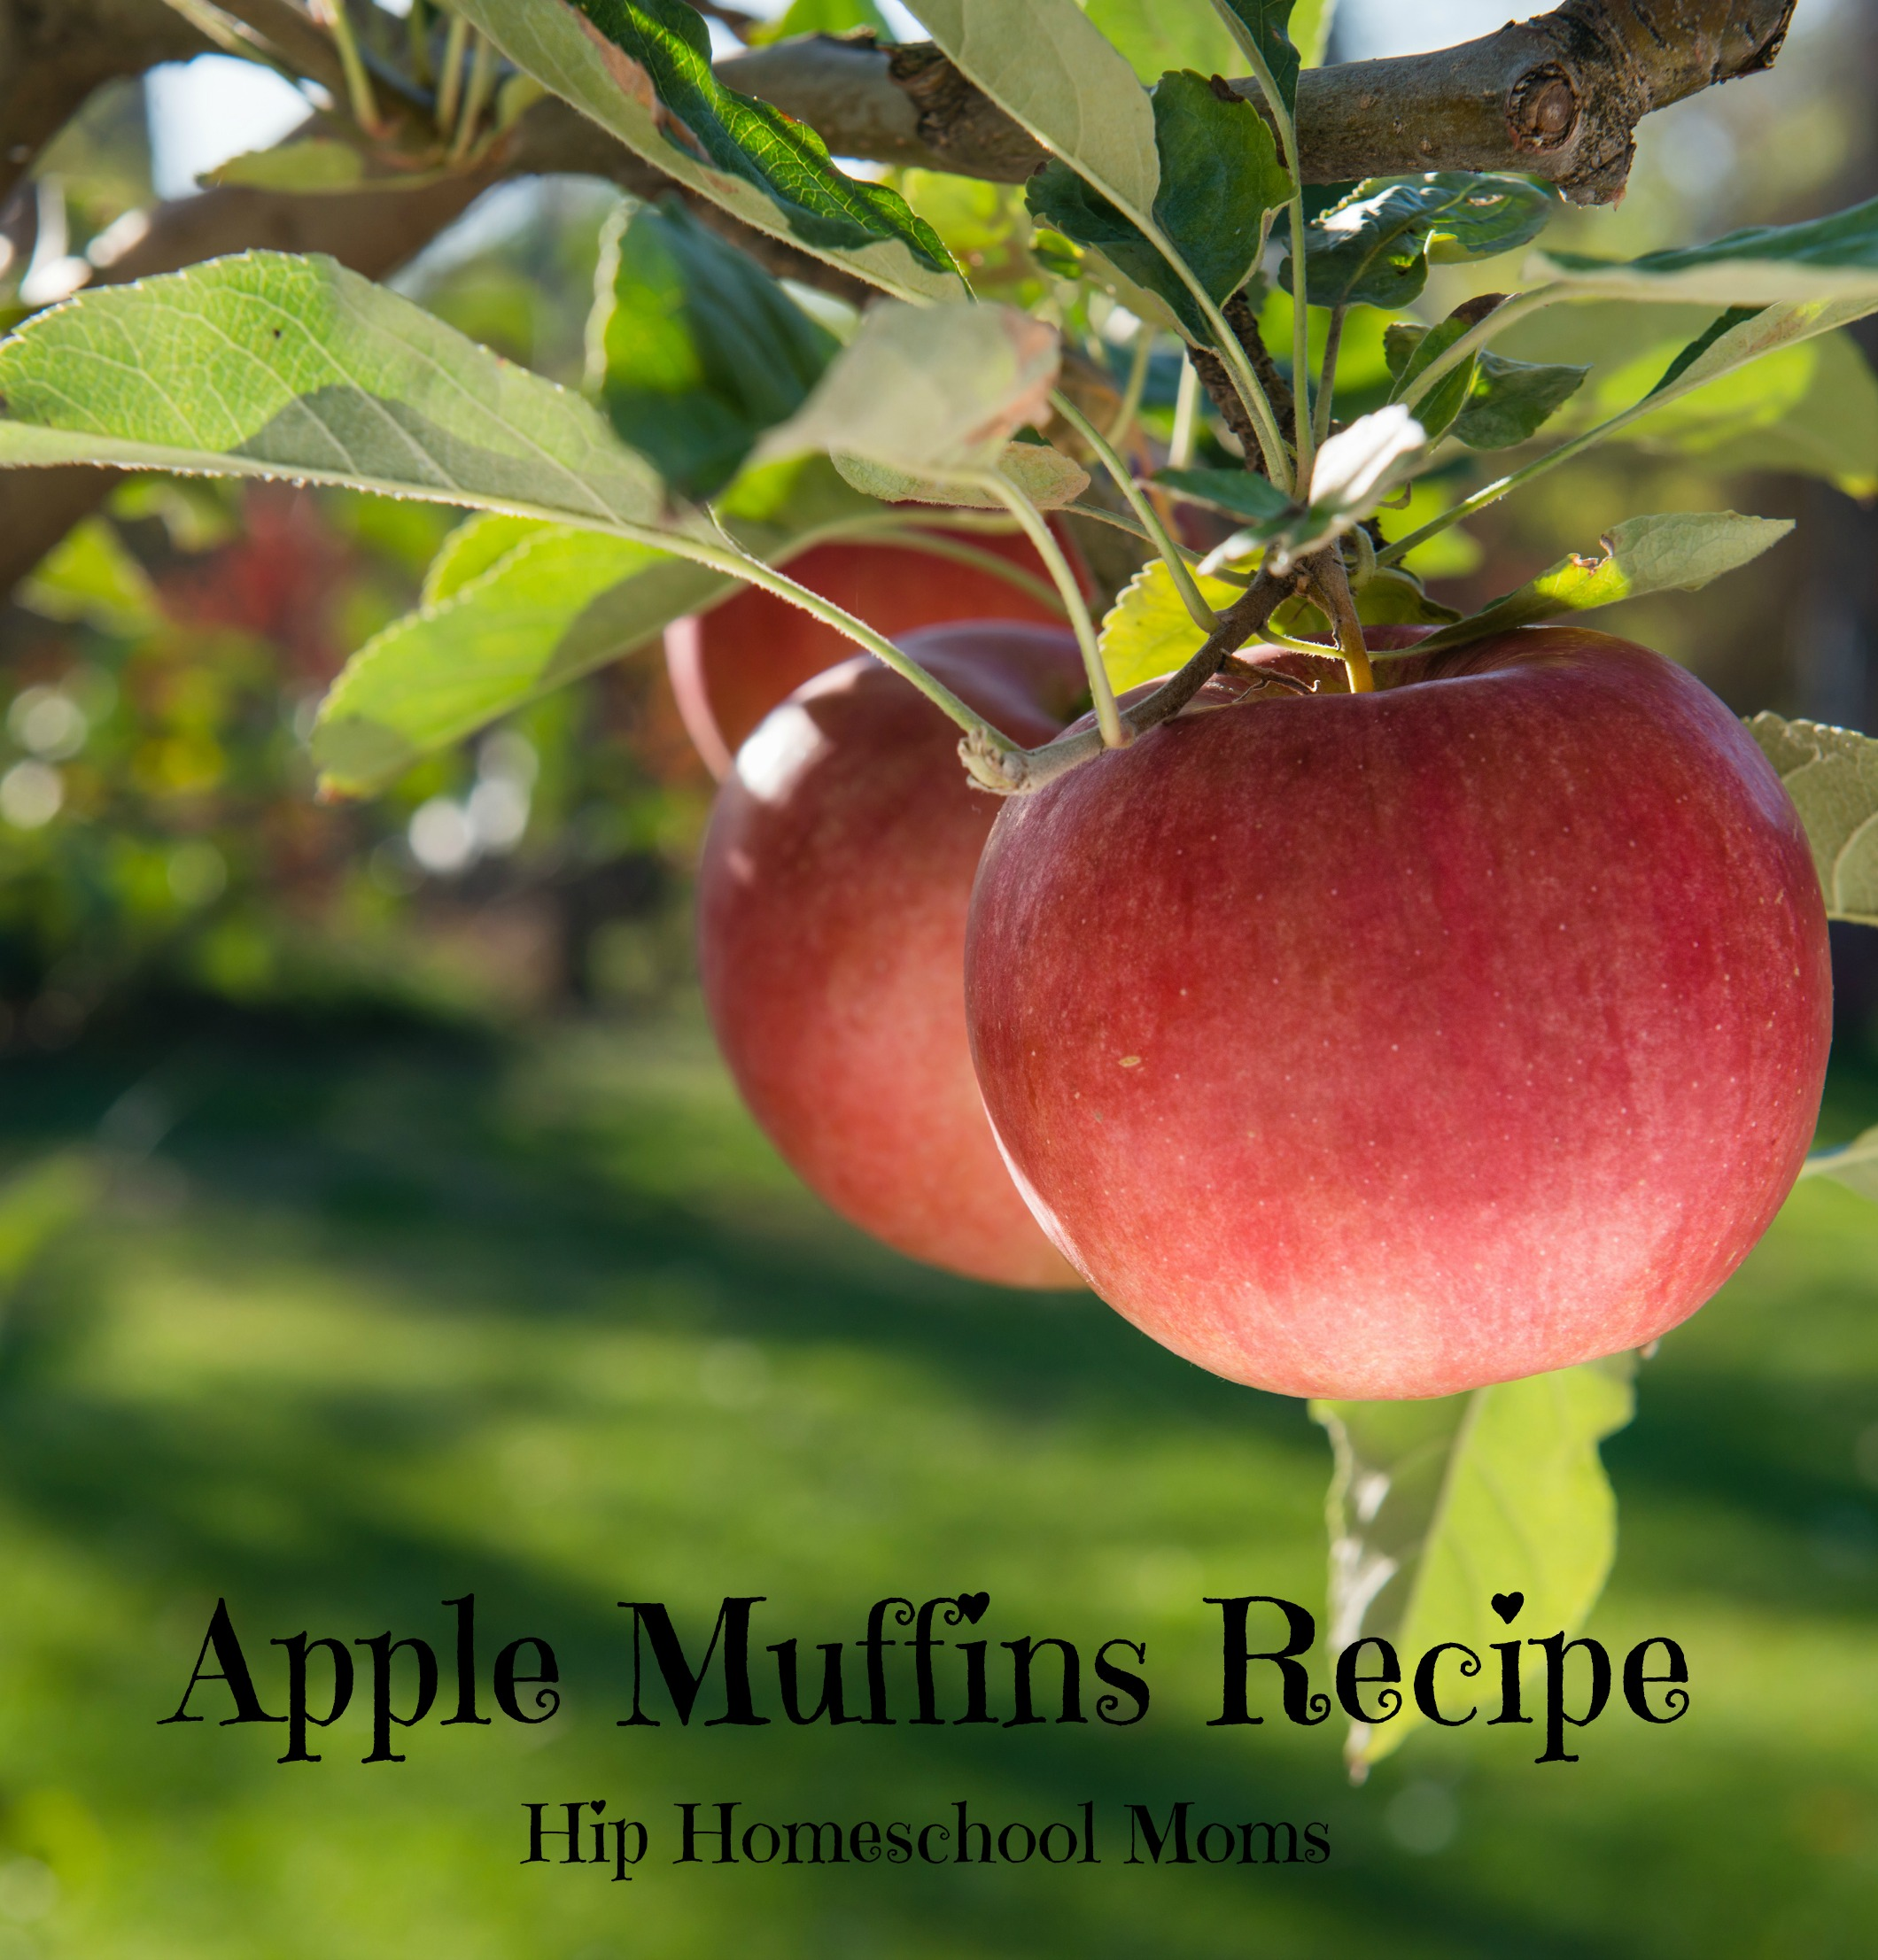 Apple Muffins Recipe from Hip Homeschool Moms